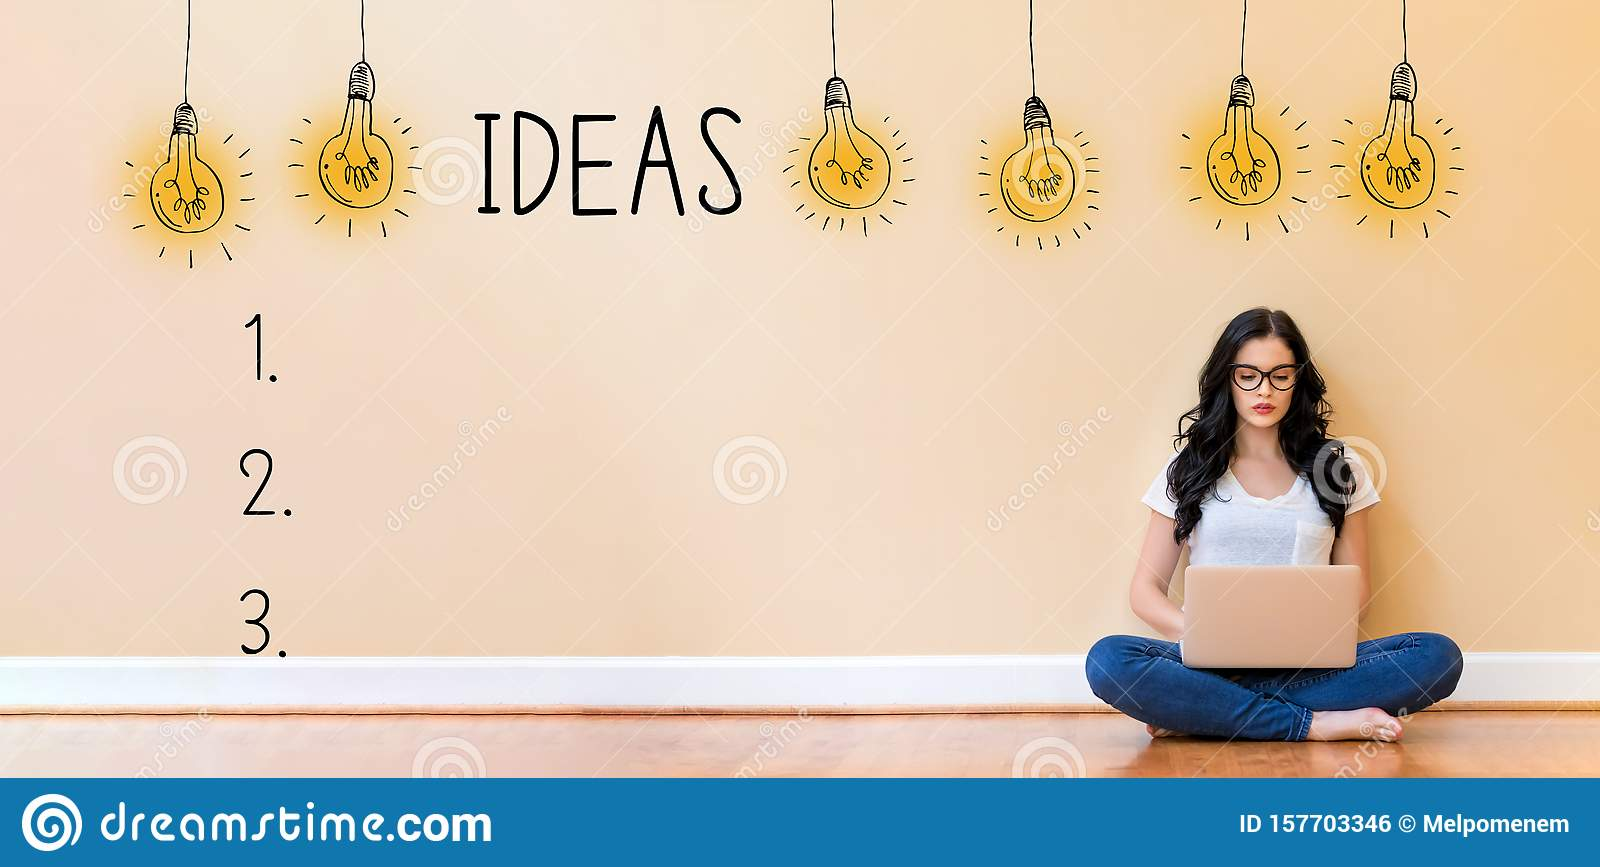 Idea list with woman using a laptop